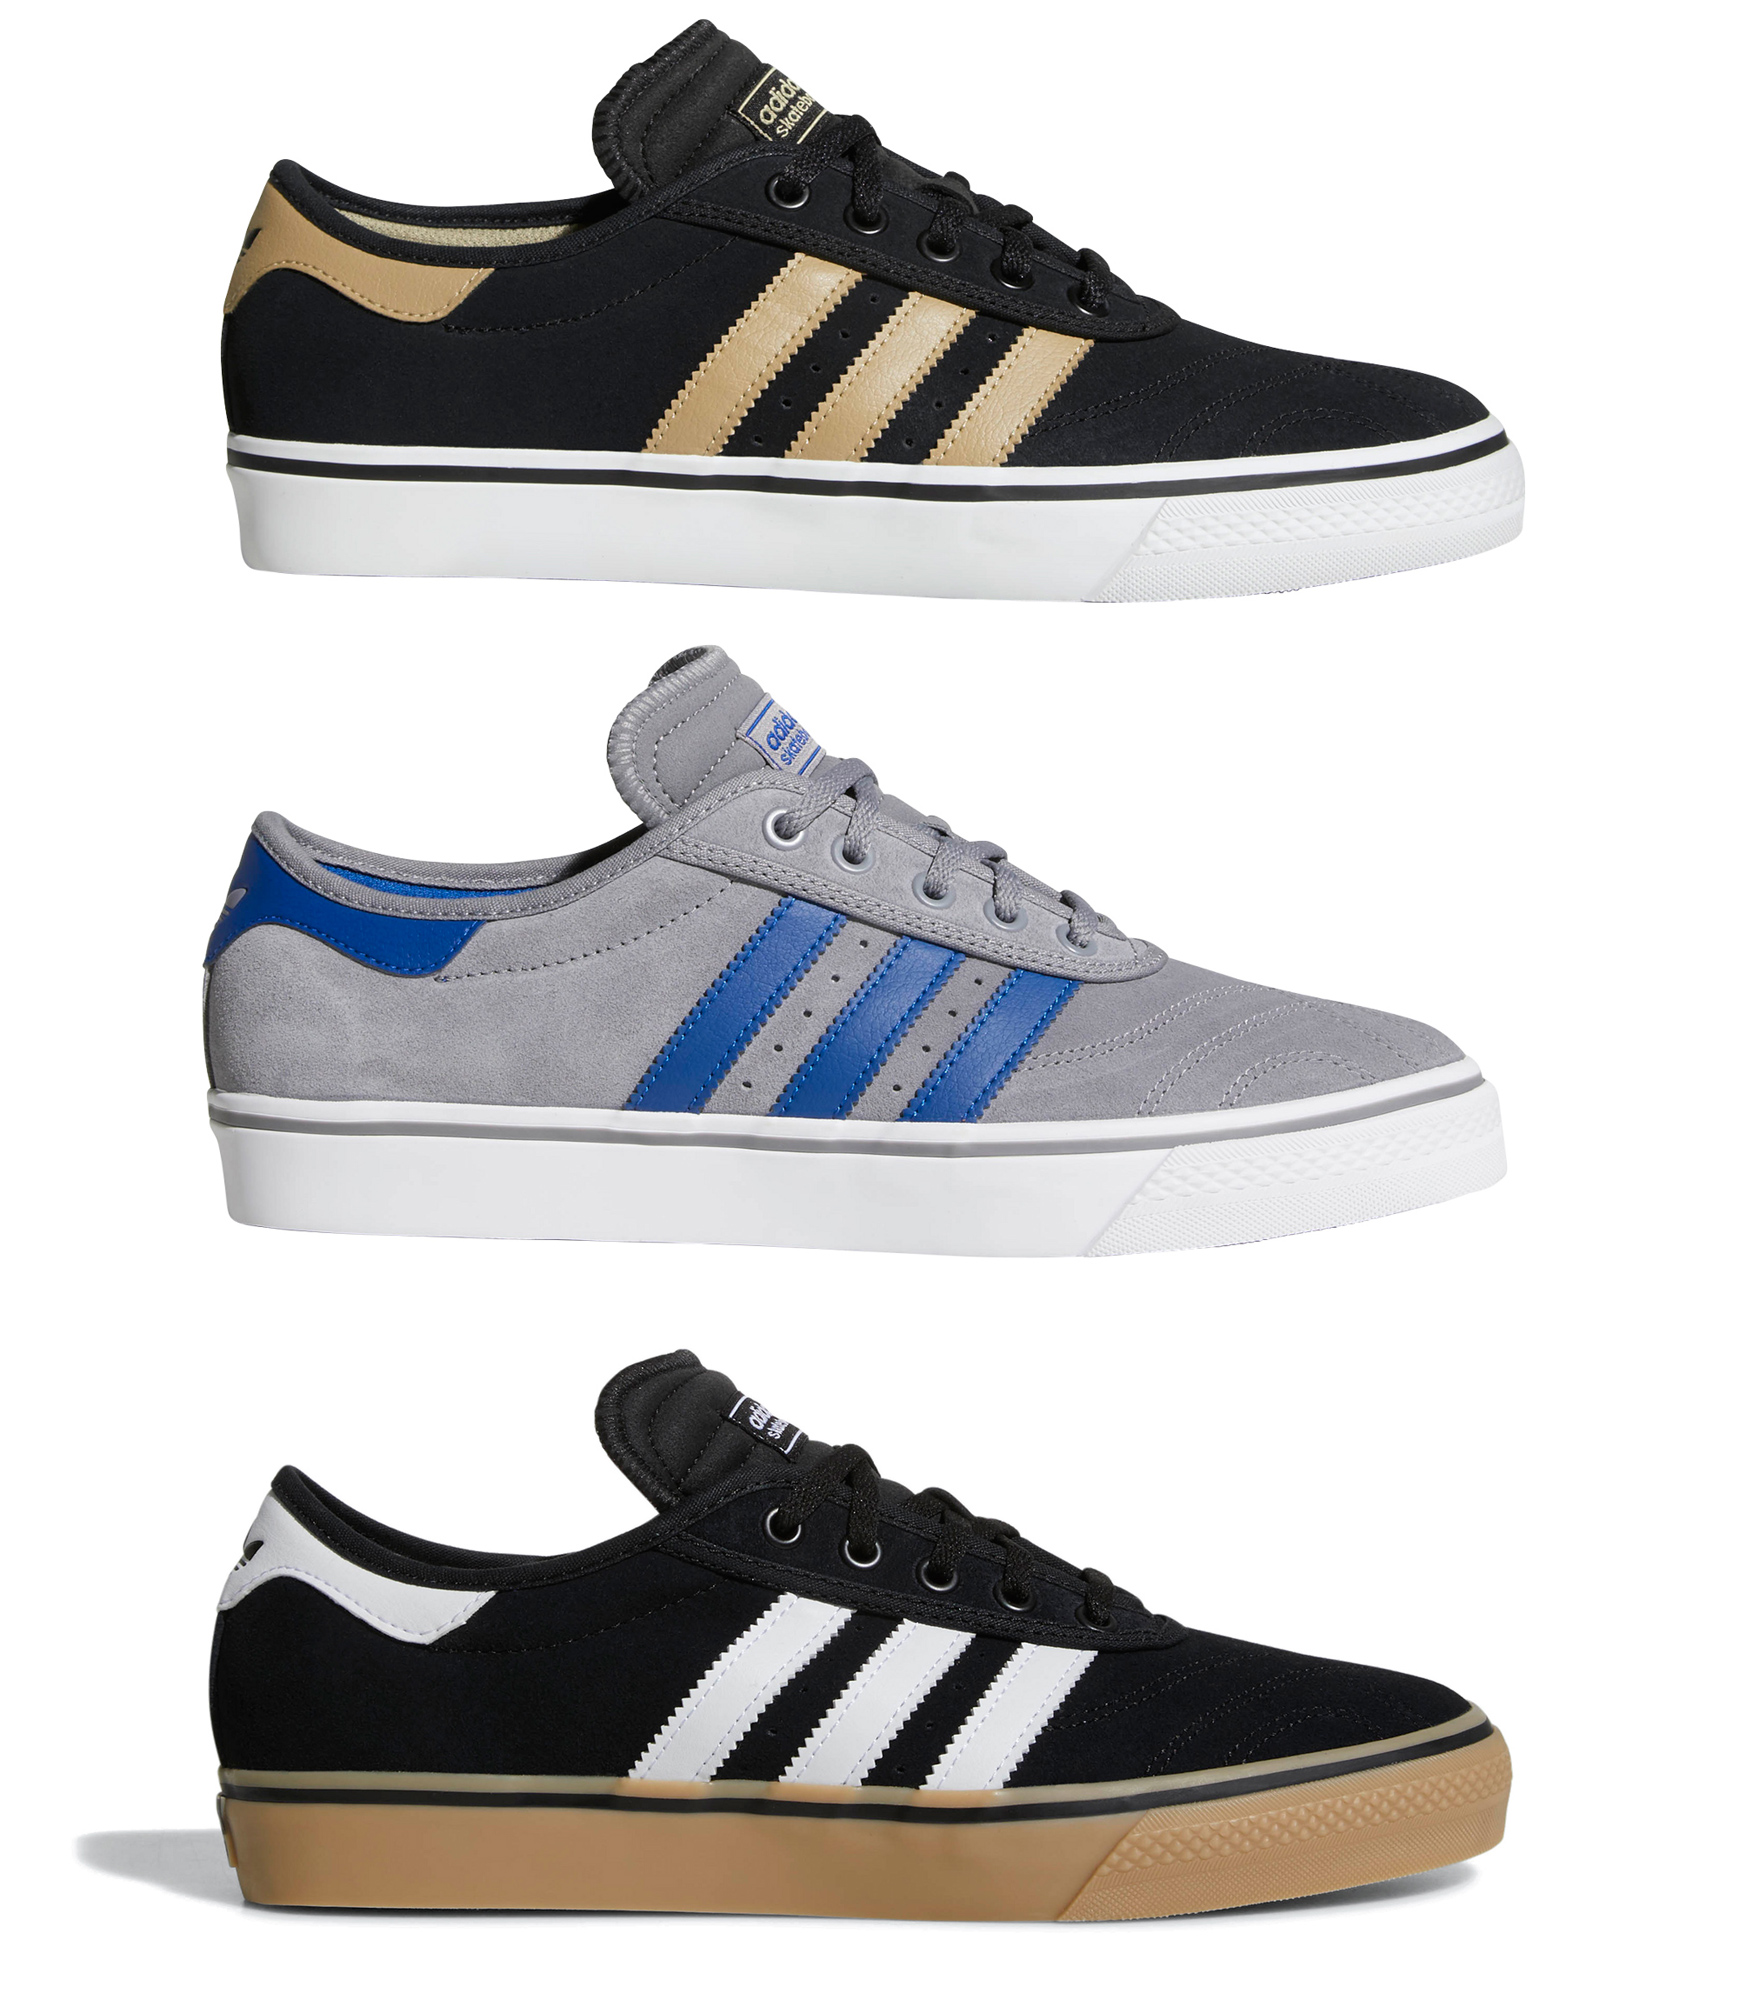 best service f565a 5ff16 Sentinel Adidas Skateboarding - Adi-Ease Premiere - Skate Shoes, Trainers,  Suede,